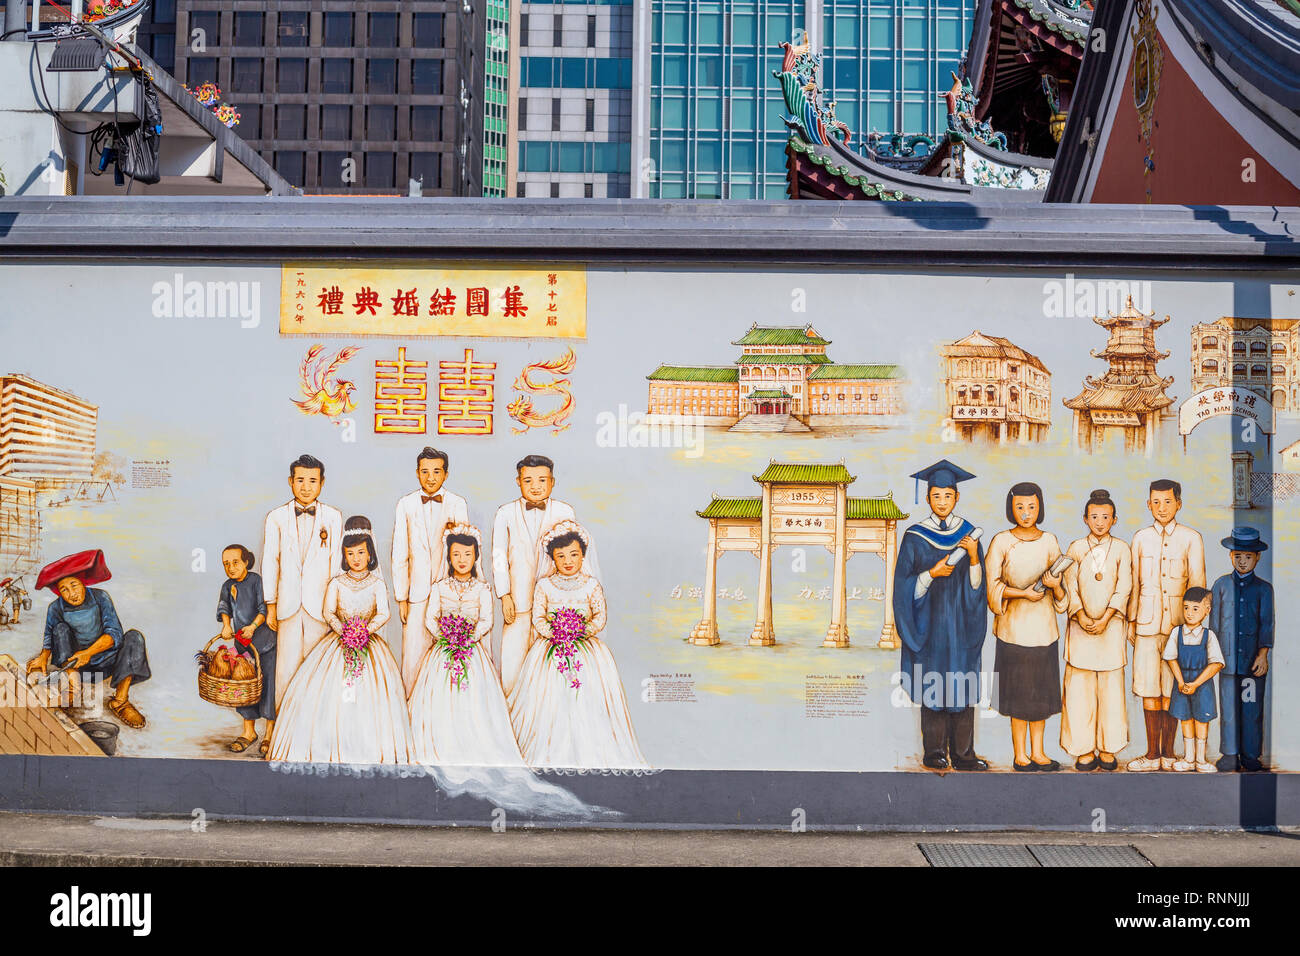 Singapore, Amoy Street Scene,  Wall Painting in Commemoration of Mass Weddings (left) and Importance of Education (right). - Stock Image